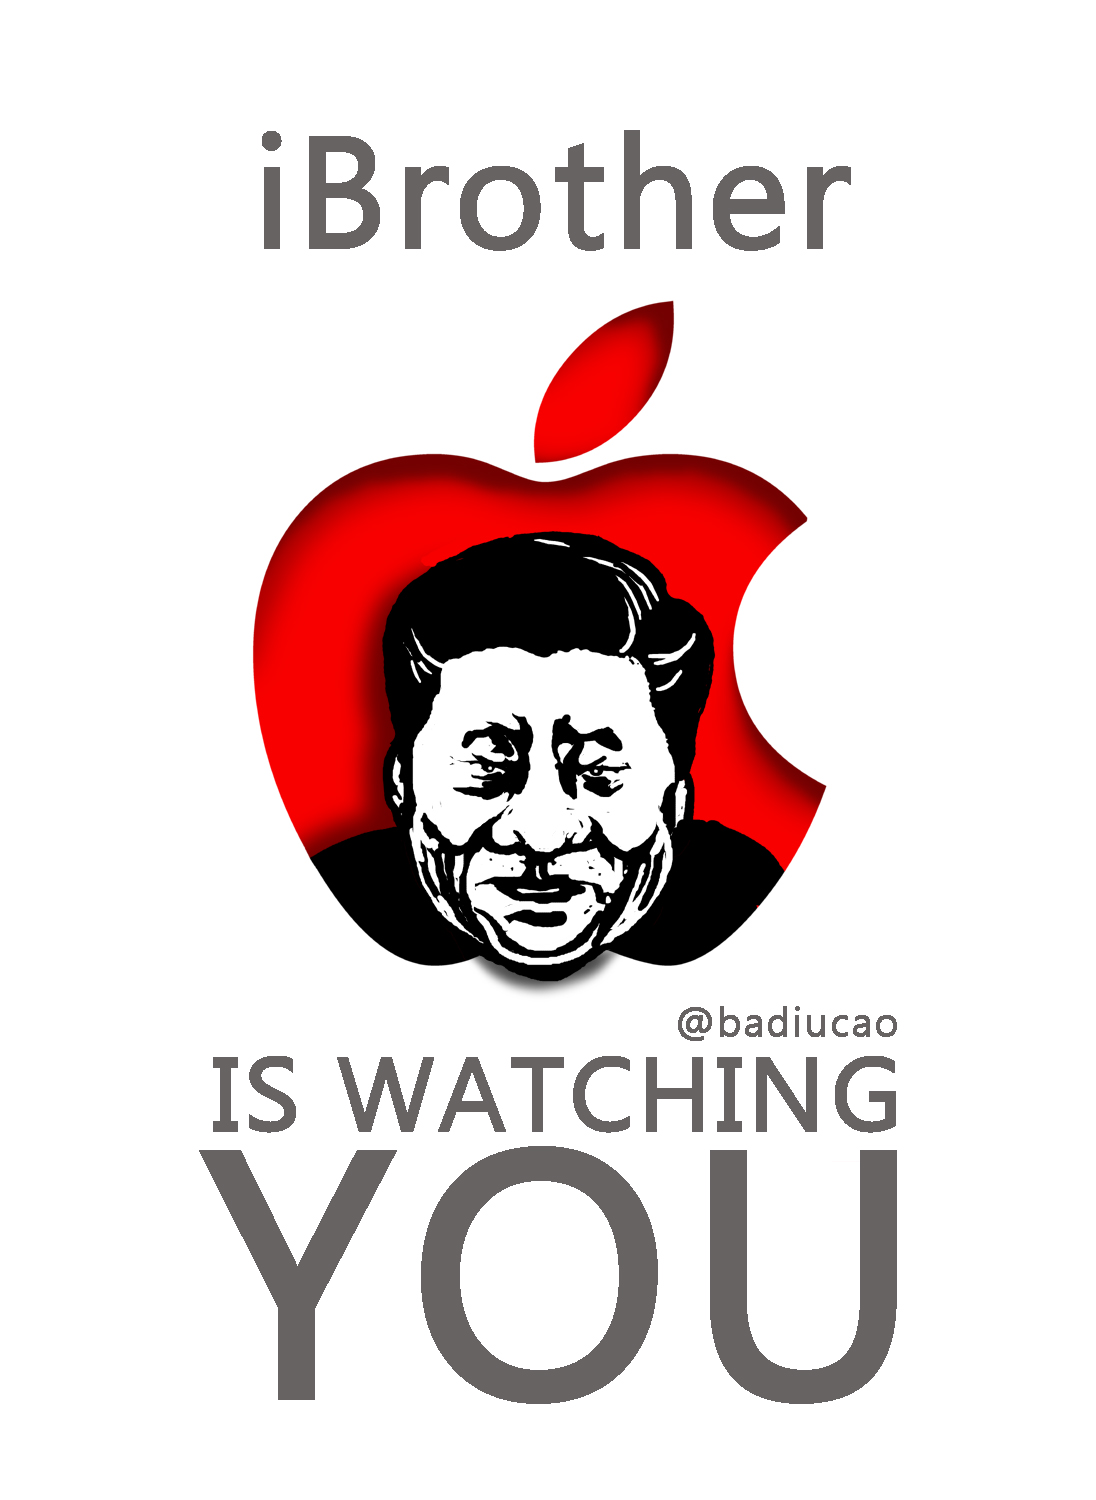 big brother is watching u 拷贝